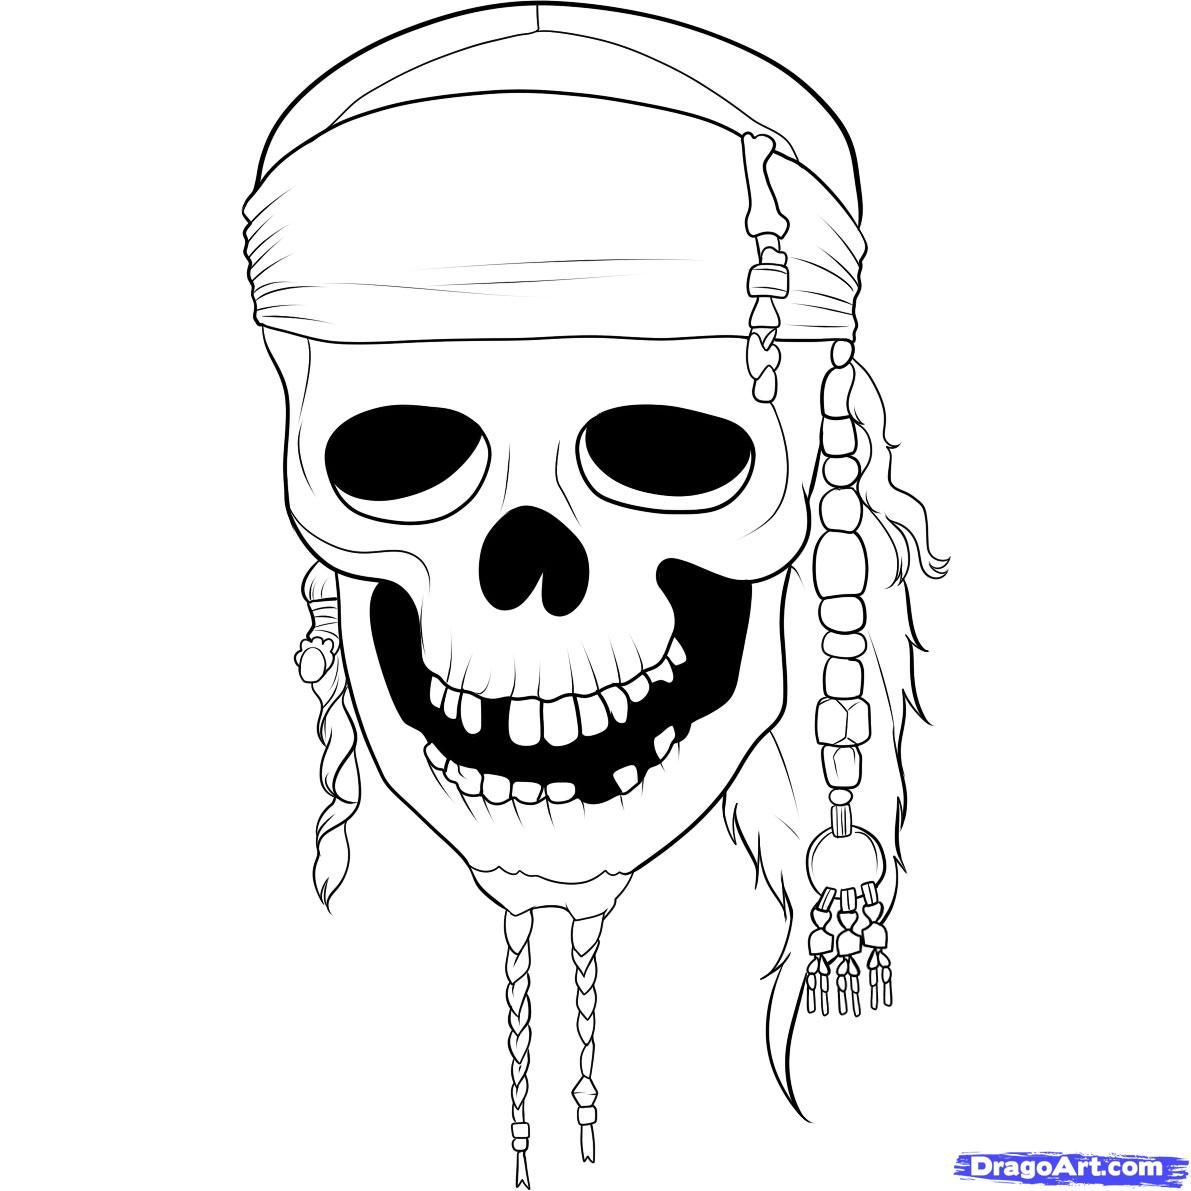 How to Draw Pirates of the Caribbean skull | Art Lessons ...